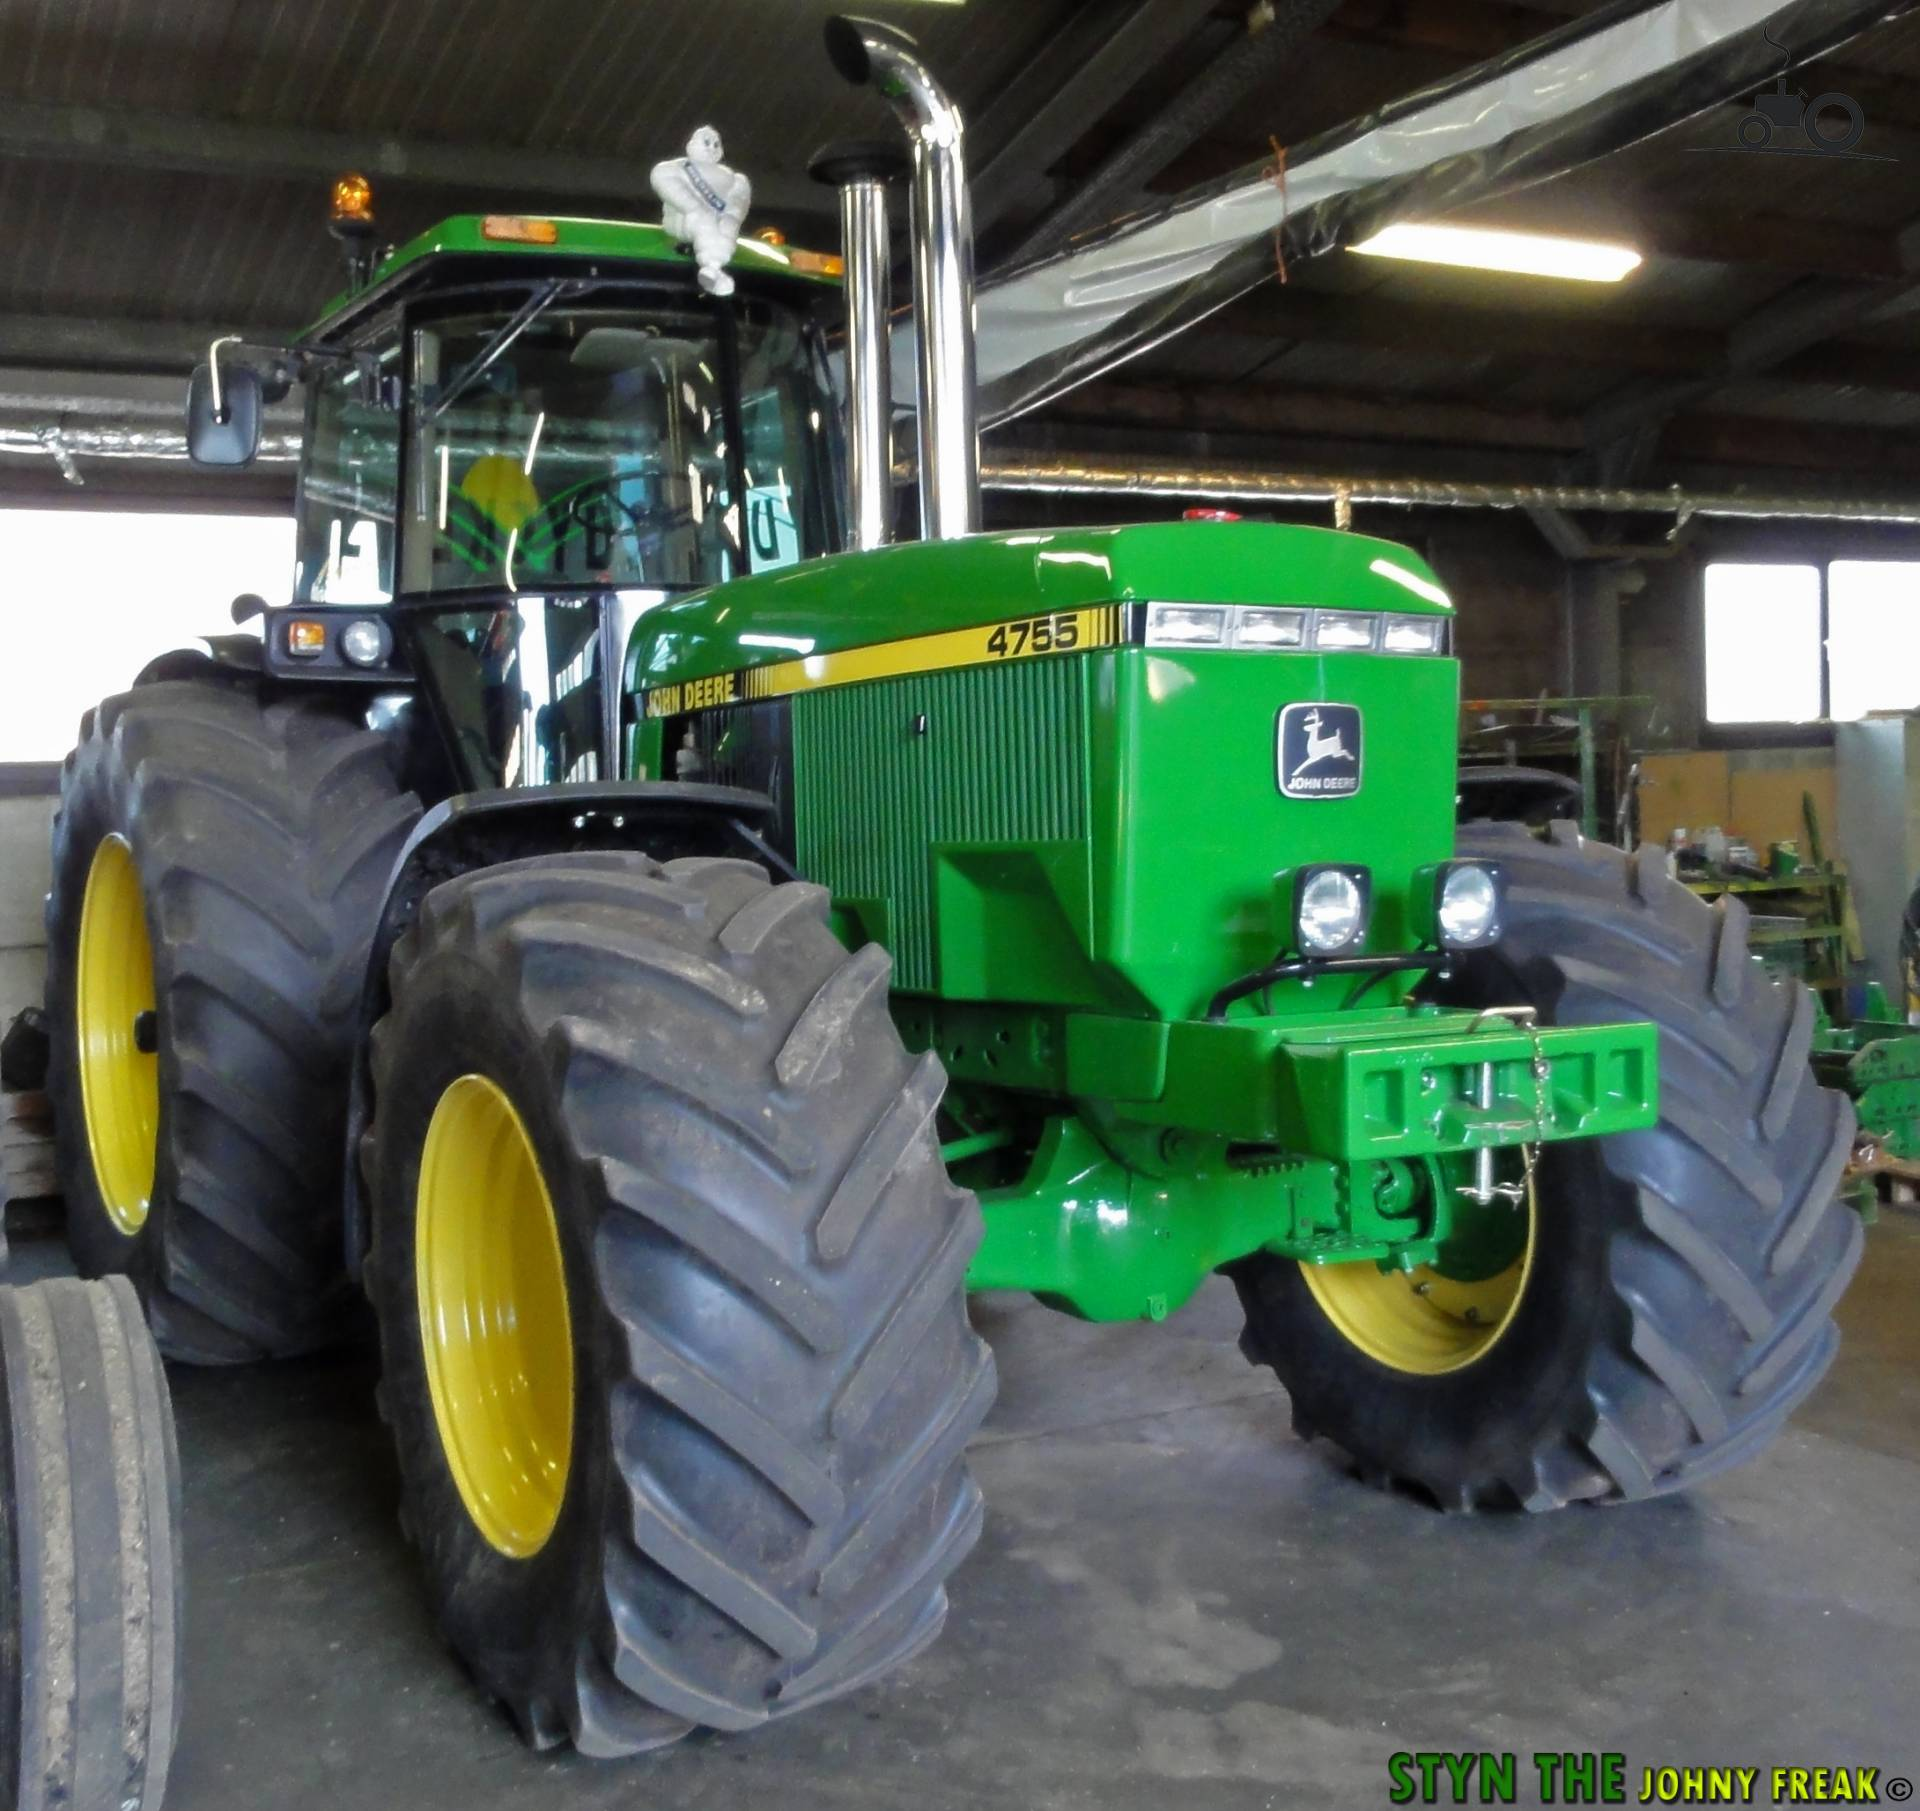 john deere 4755 specs and data everything about the john deere 4755. Black Bedroom Furniture Sets. Home Design Ideas